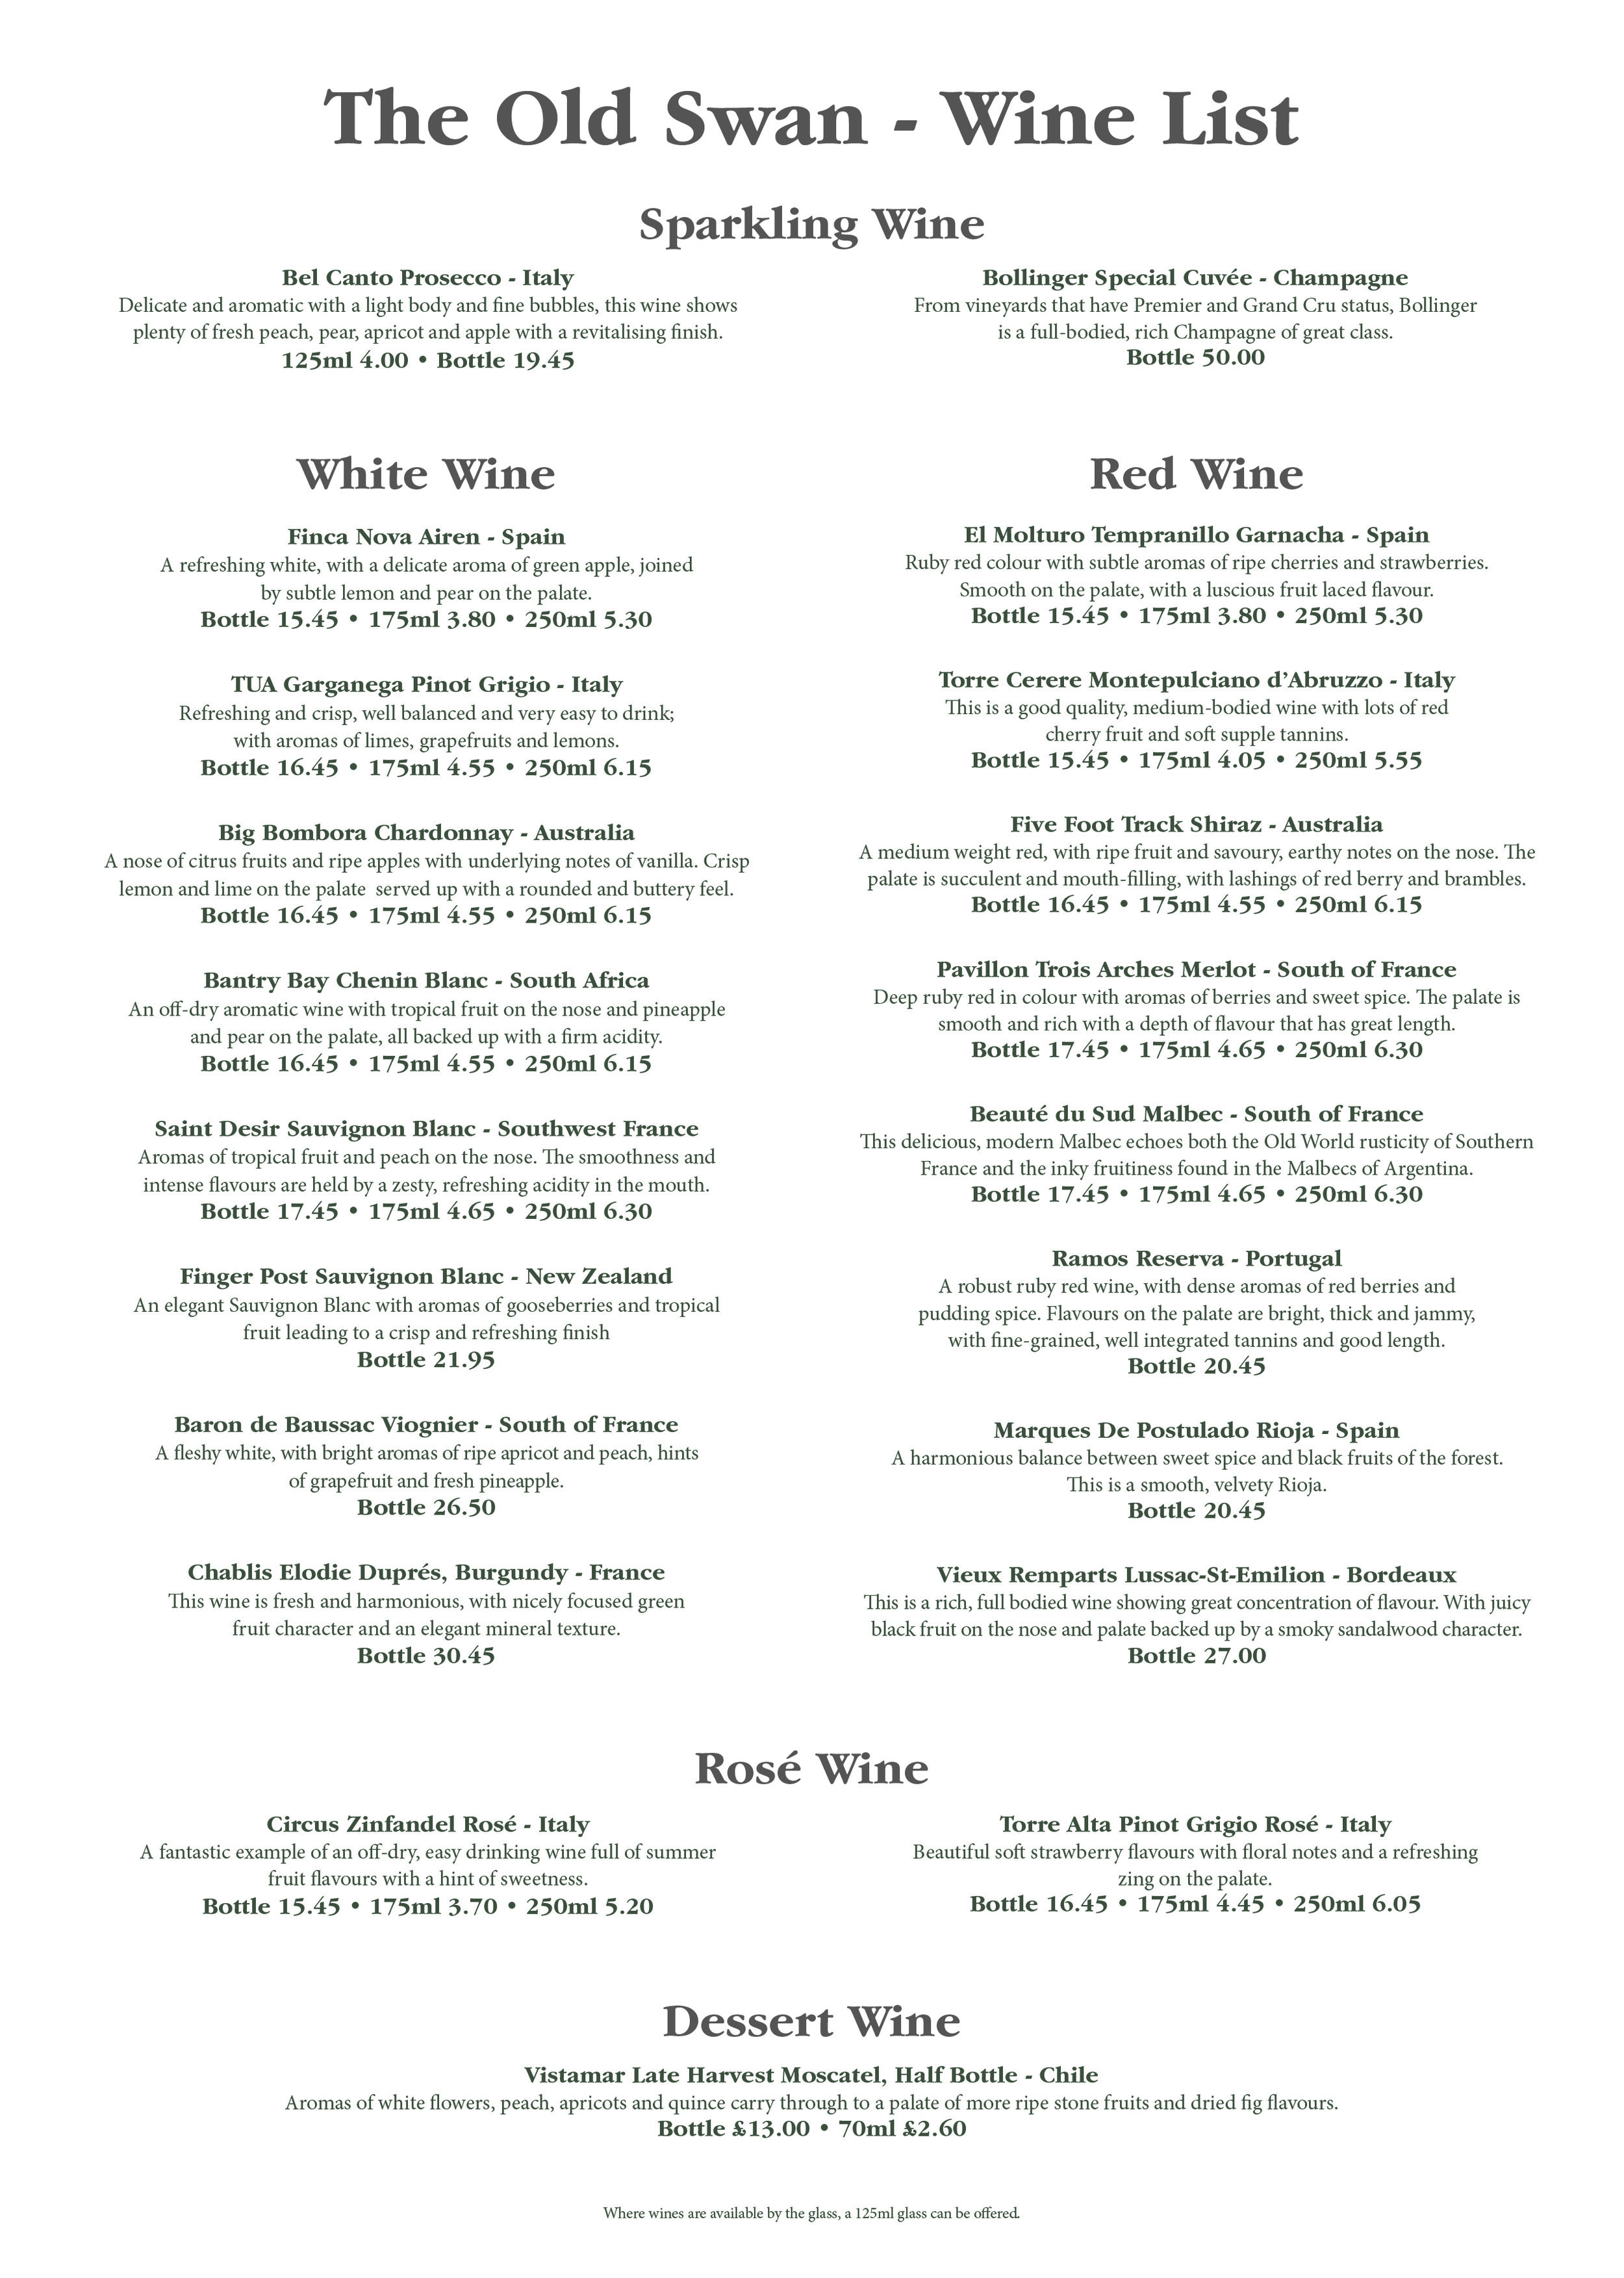 The Old Swan - Wine List Summer 2019_Page_2-02.jpg